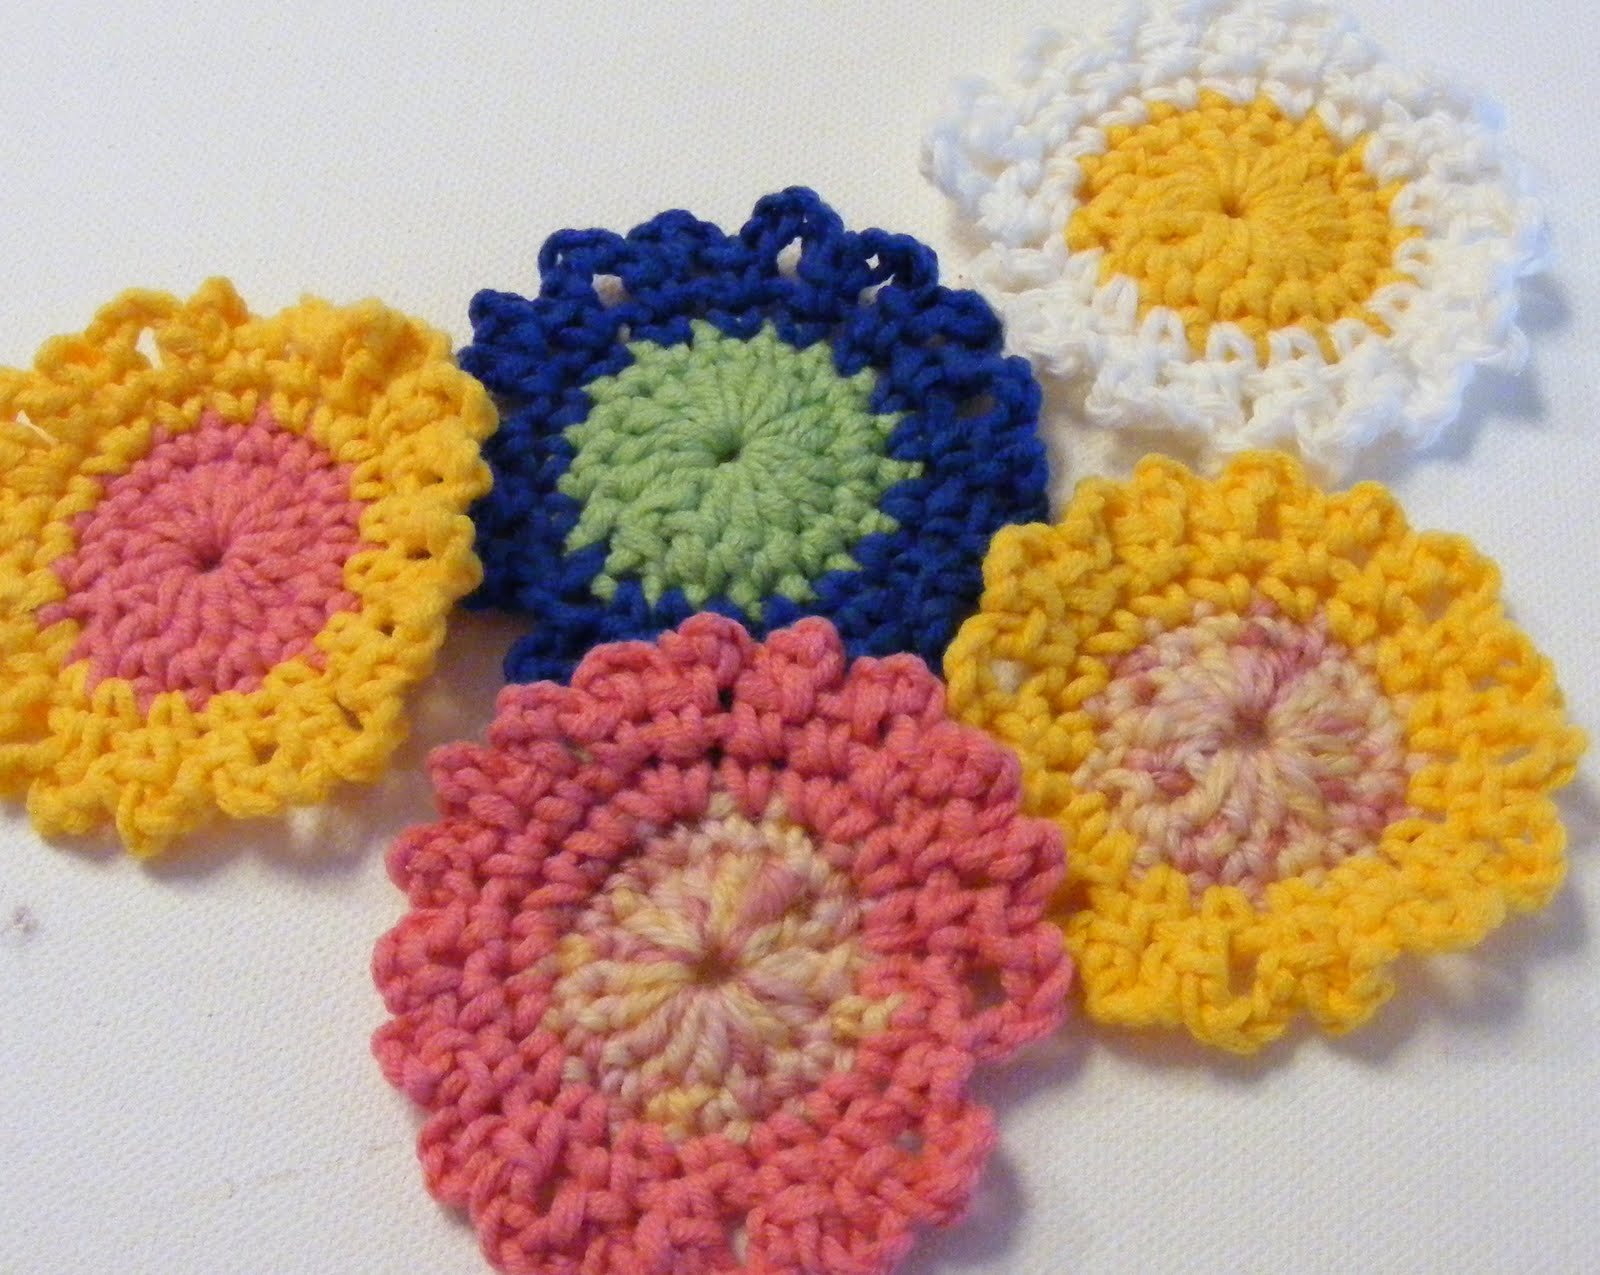 Crocheting Tutorials : Quilted Cupcake: Free Crochet Flower Tutorial